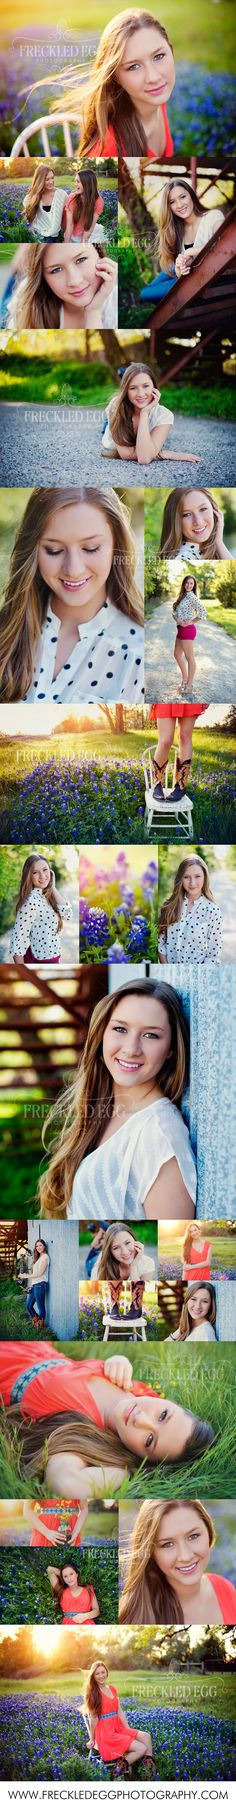 Senior Spring Photos, and Posing.